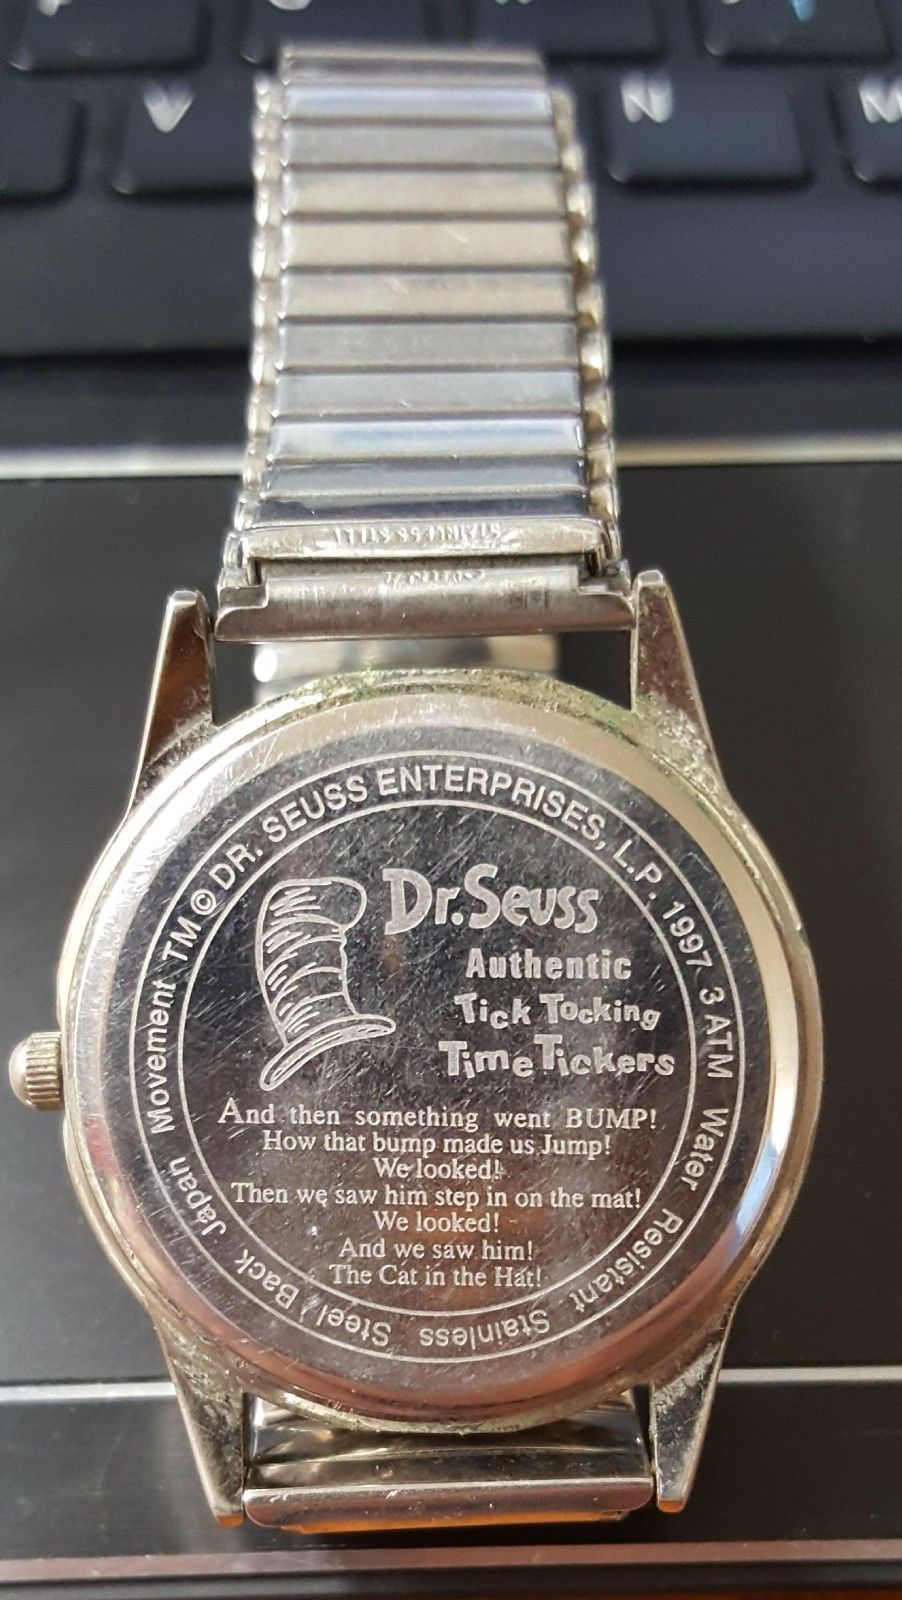 Dr Seuss Cat In The Hat Wristwatch, Tick Tocking Time Tickers, 1997